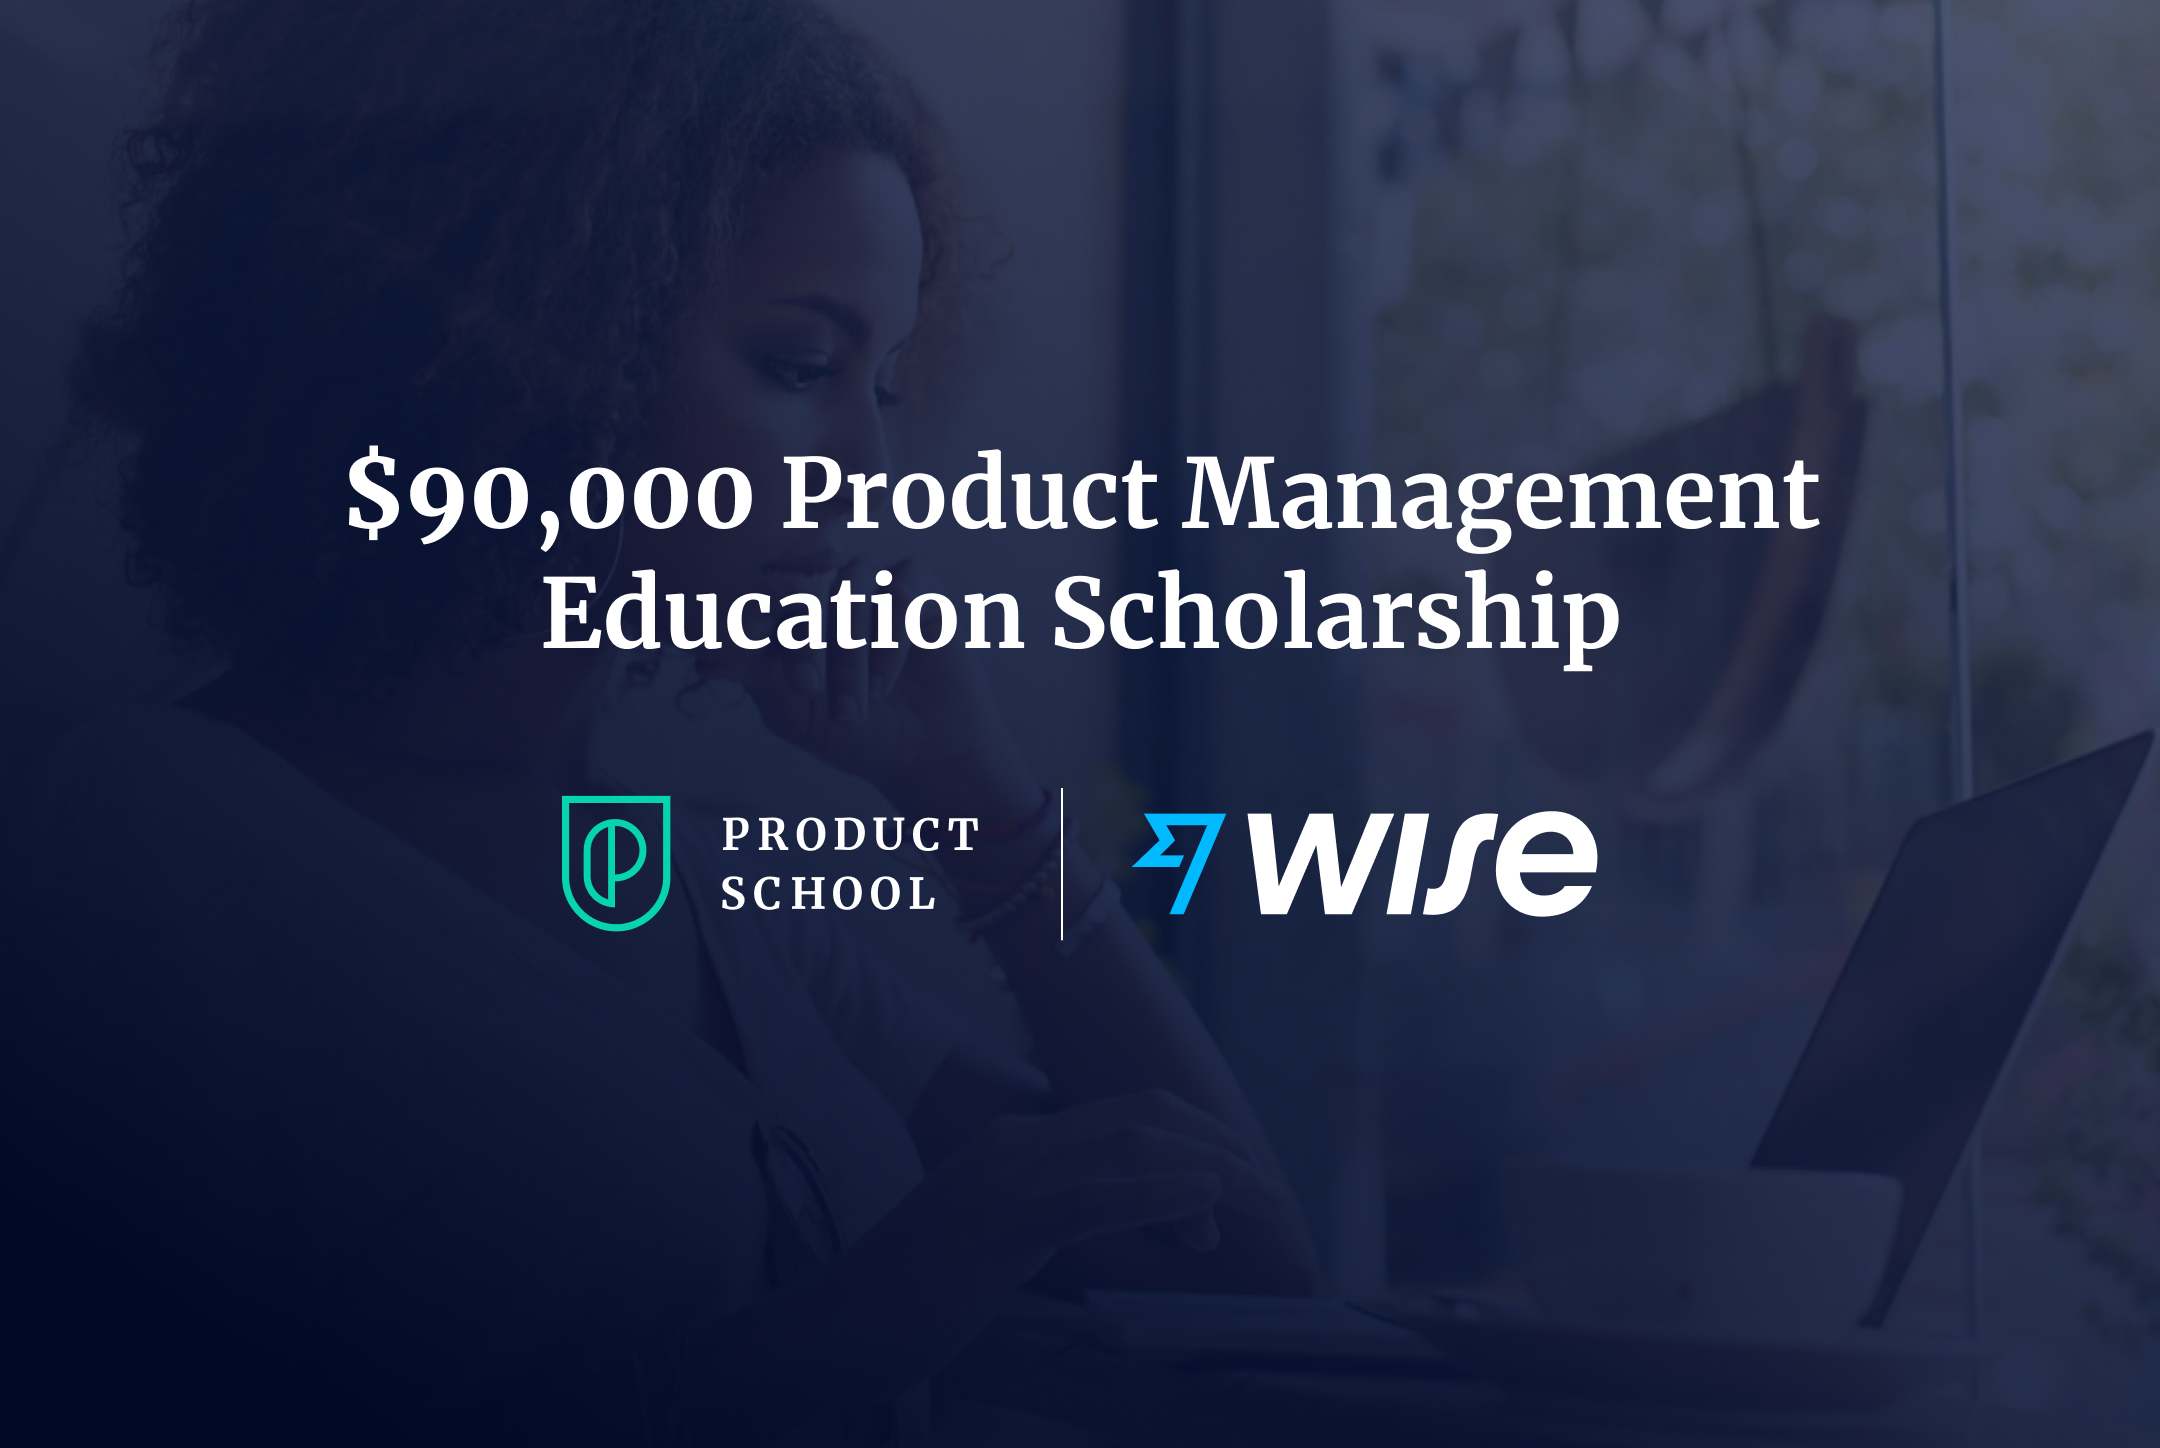 Wise Partners With Product School to Create $20,20 Education ...